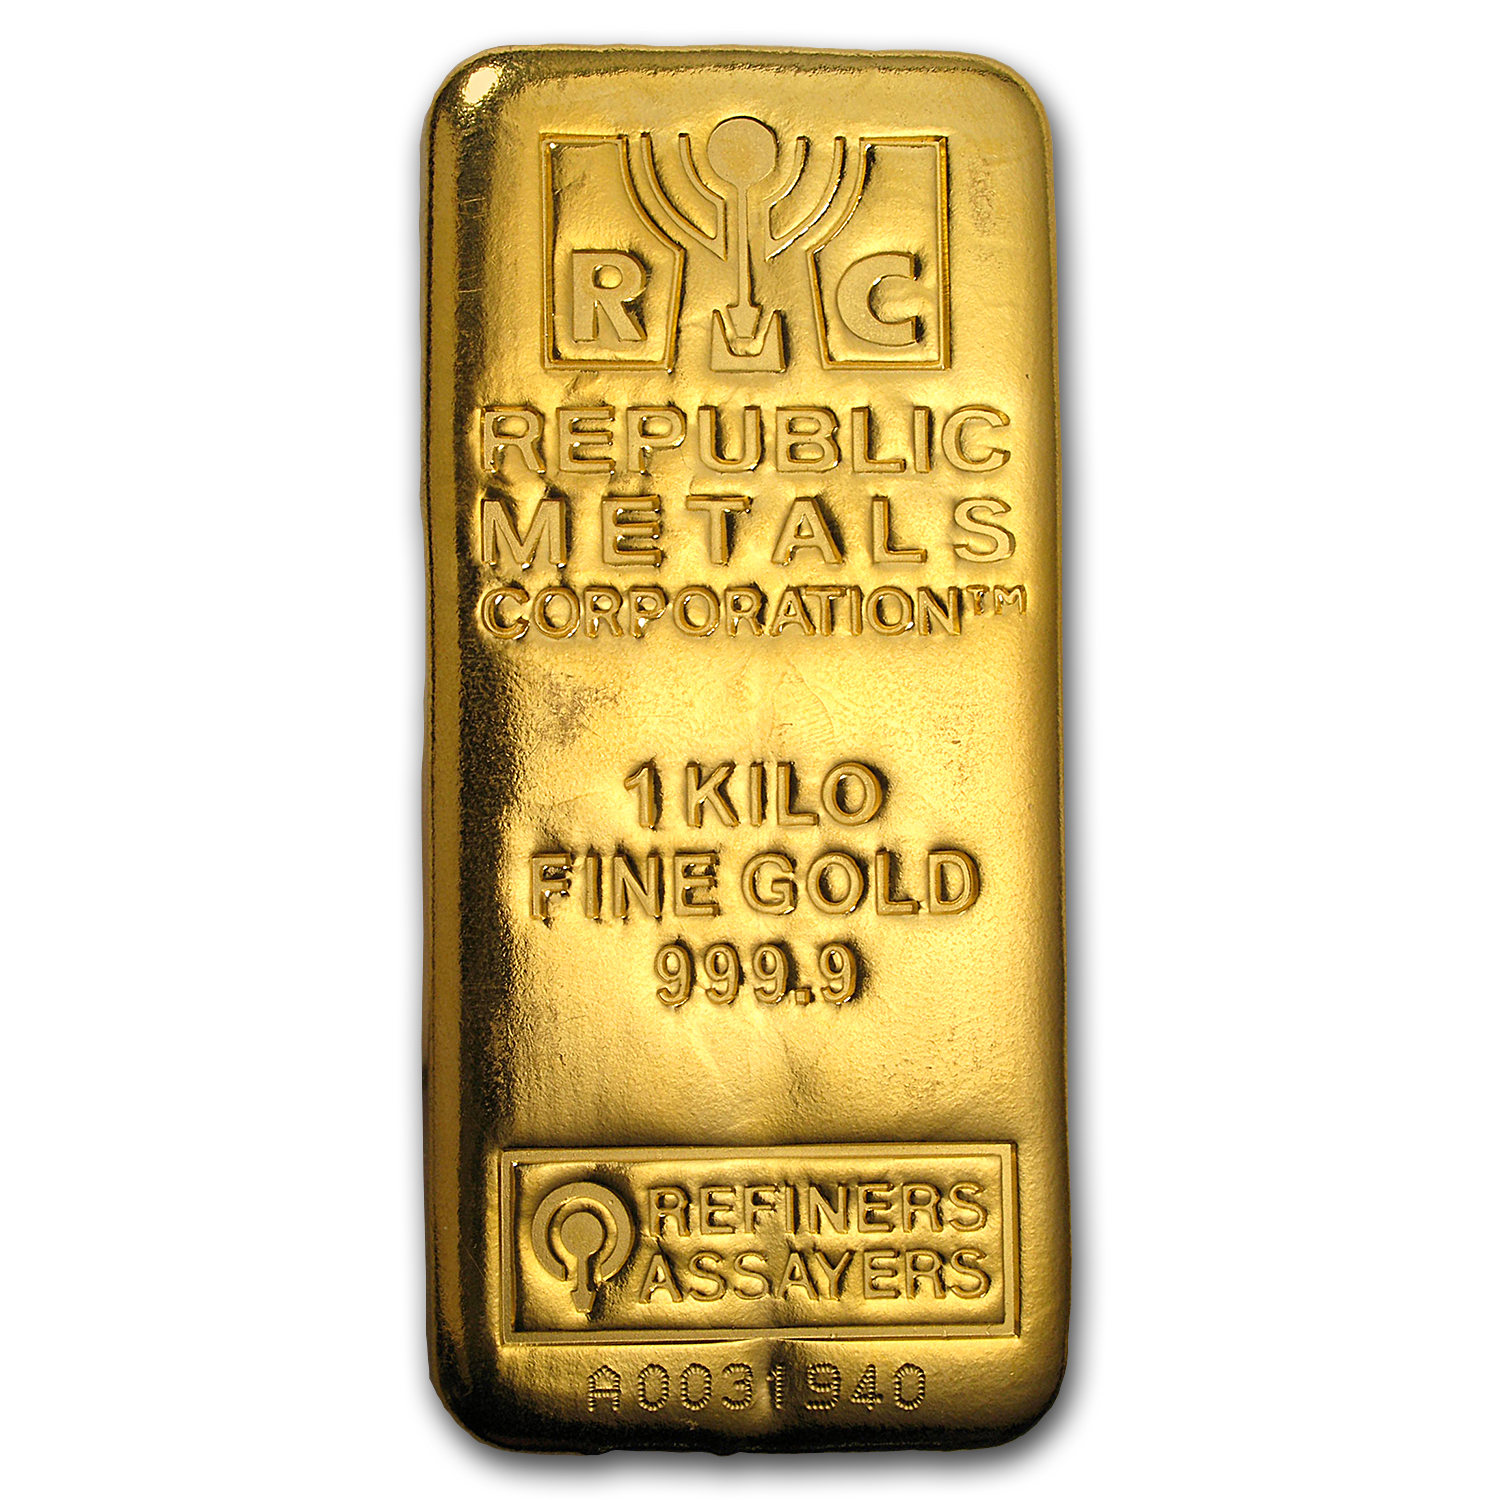 1 kilo Gold Bar - Republic Metals Corporation (Cast w/Assay)